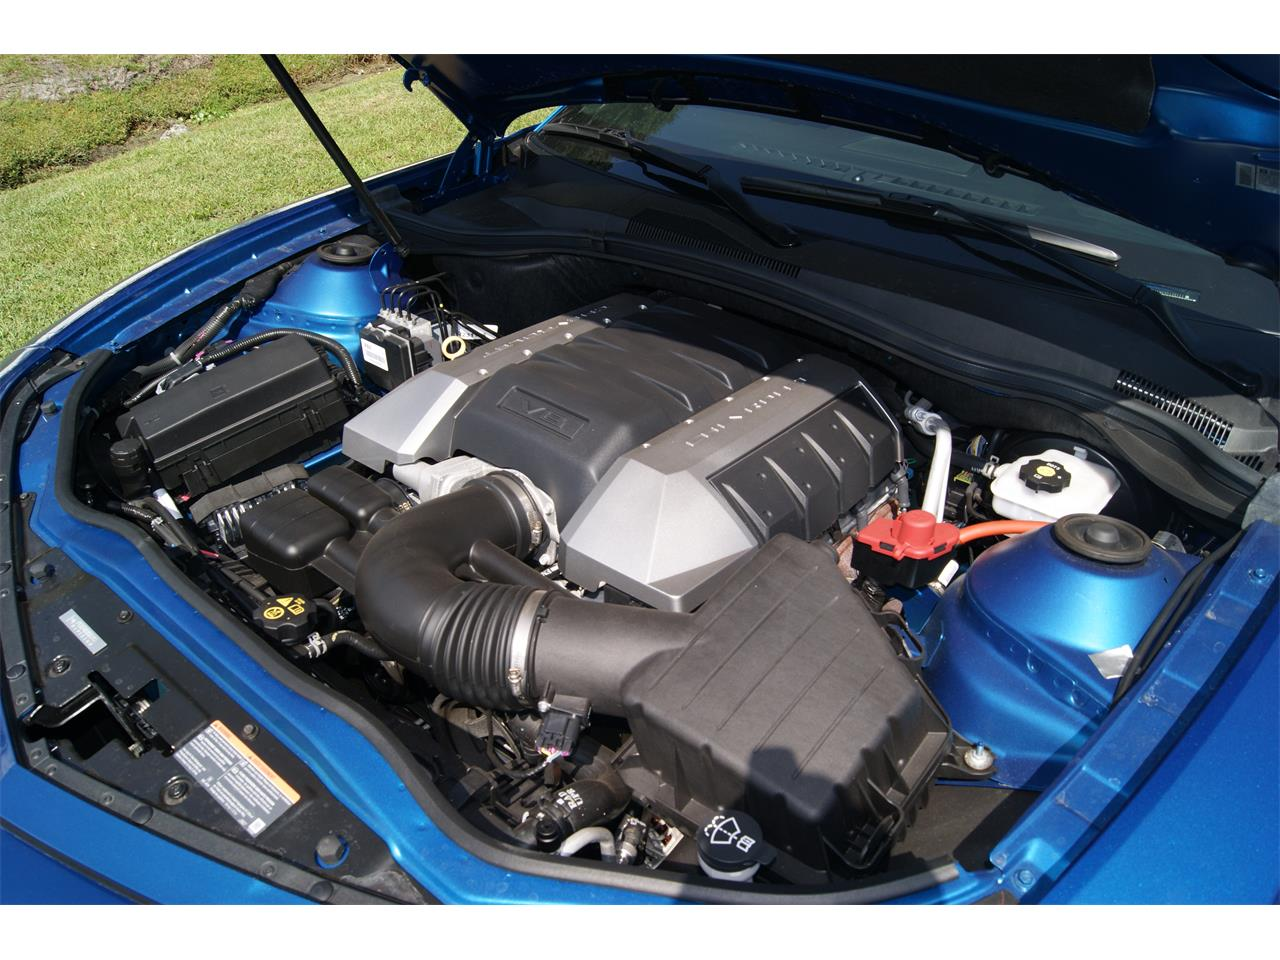 Large Picture of '10 Camaro located in North Carolina - $29,000.00 Offered by a Private Seller - Q77R